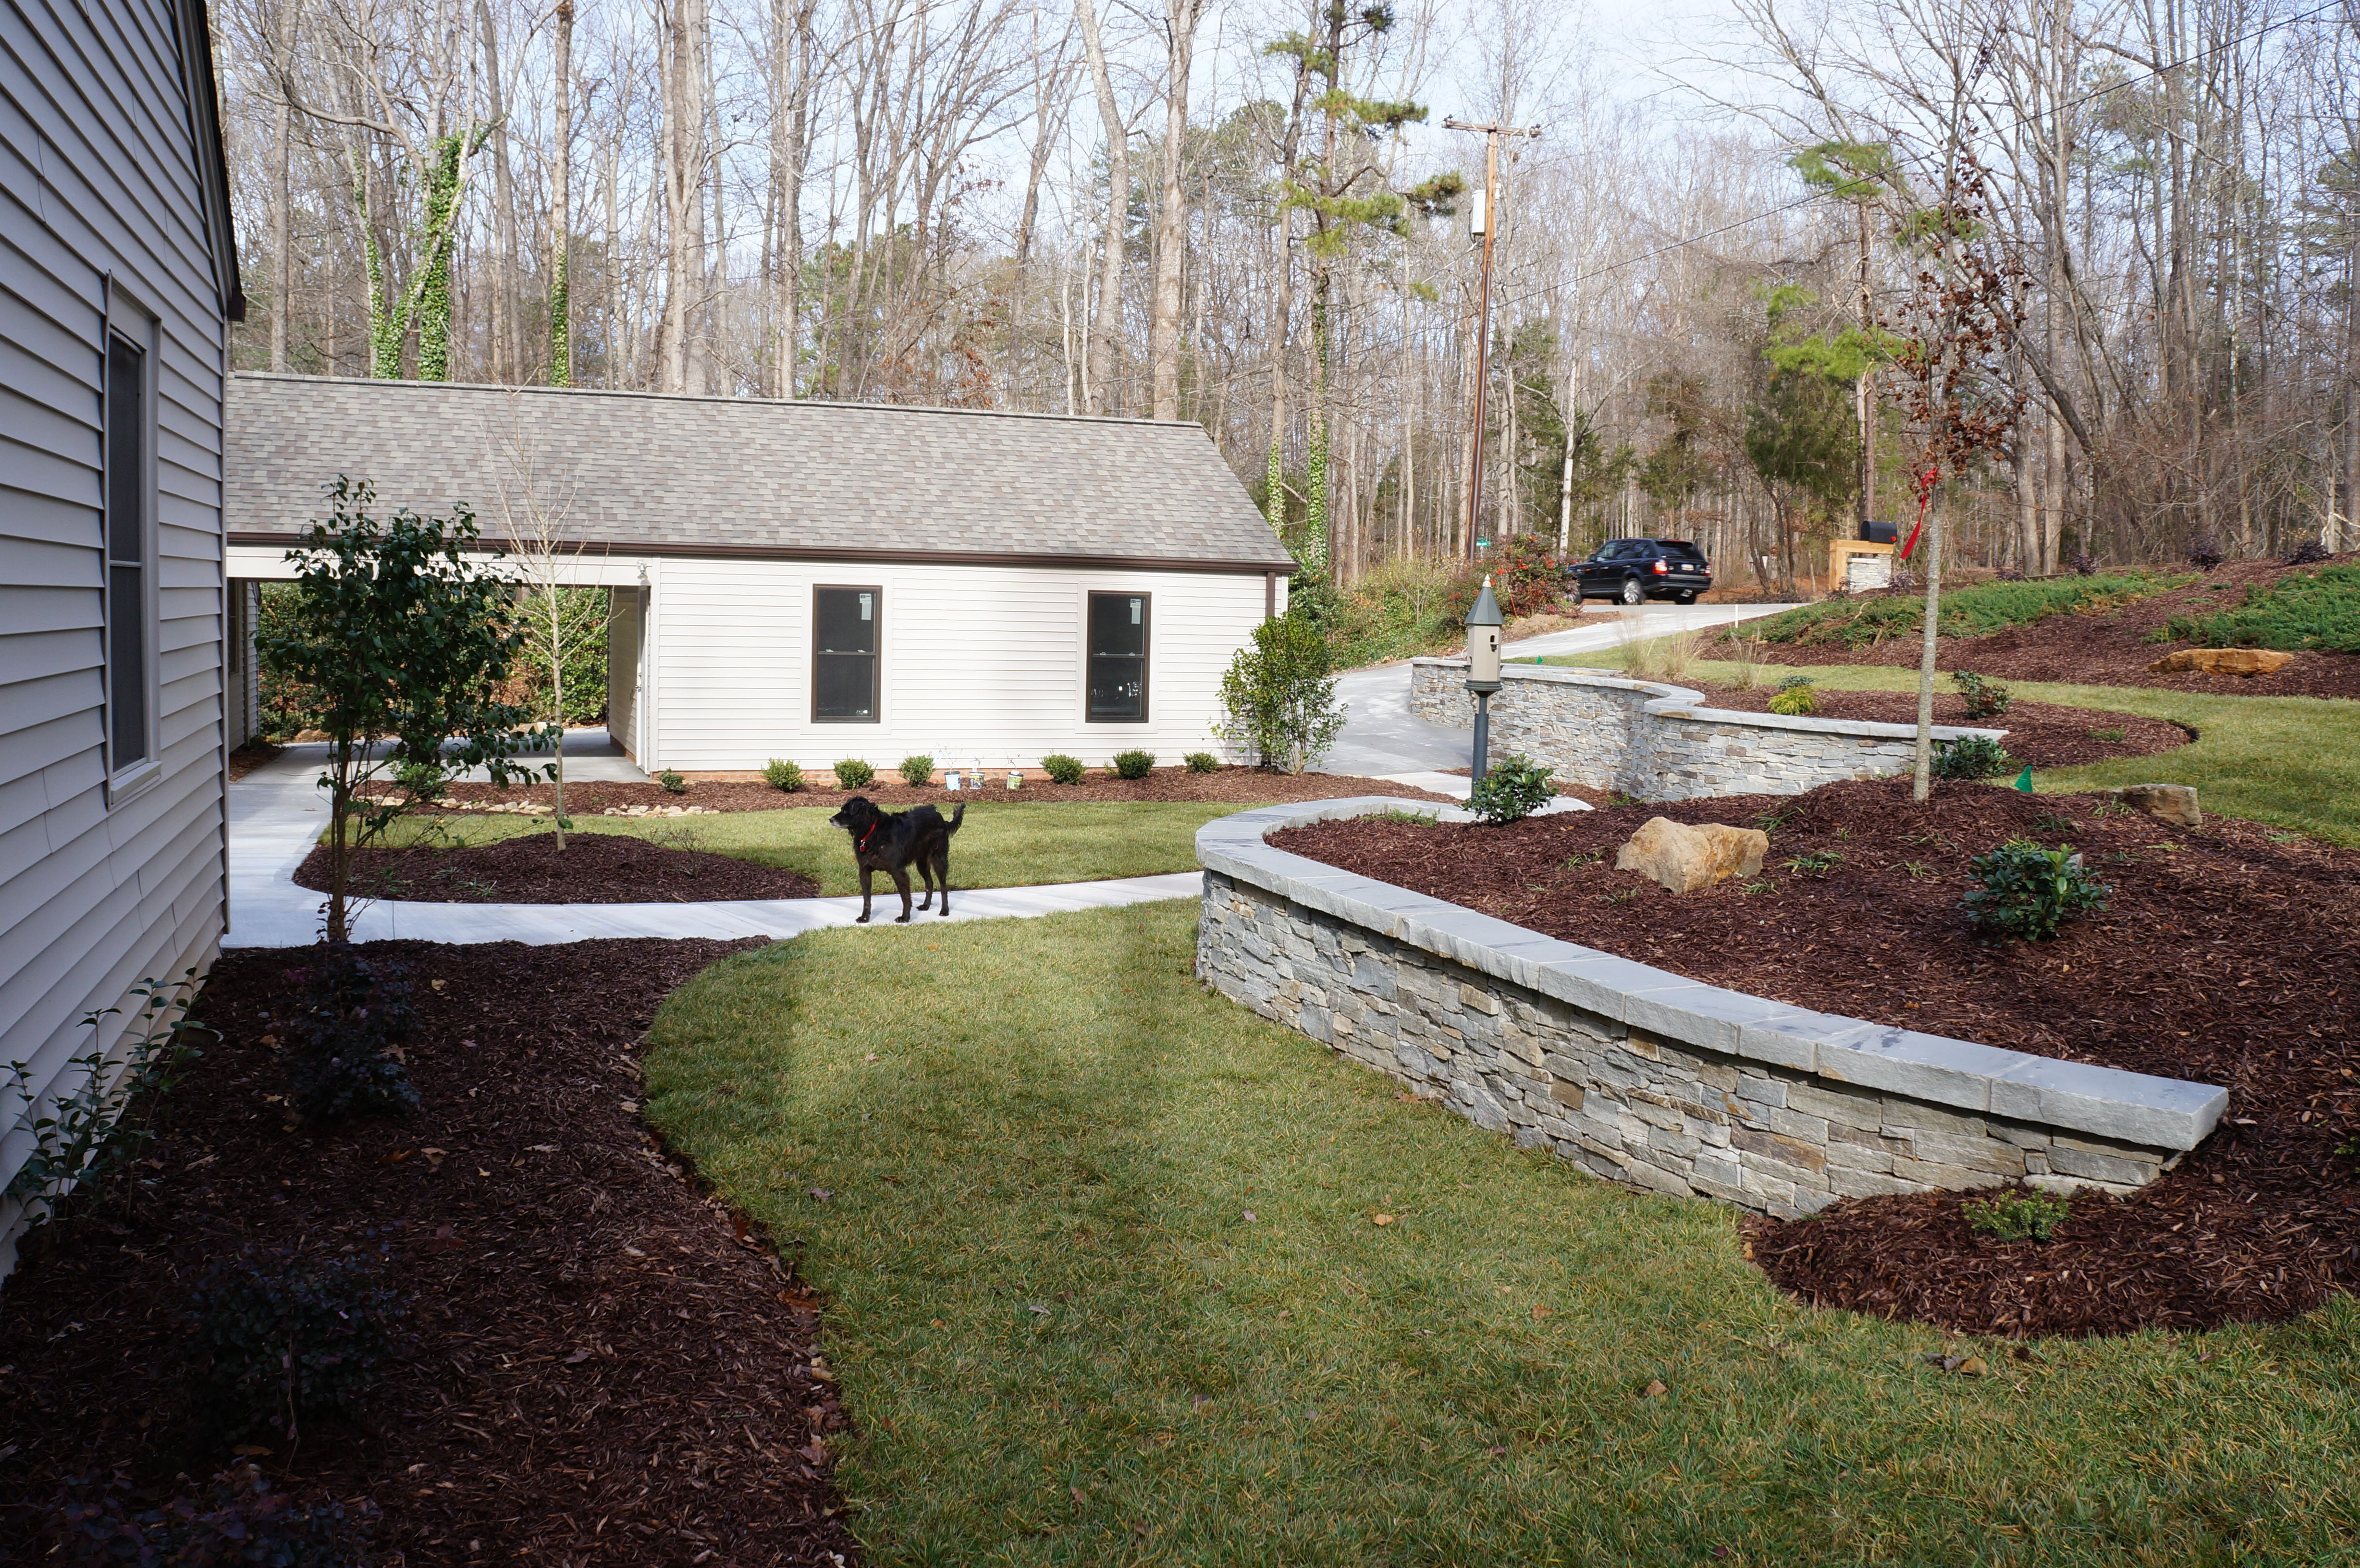 Real Rock Retaining Wall The Front Yard At This Home